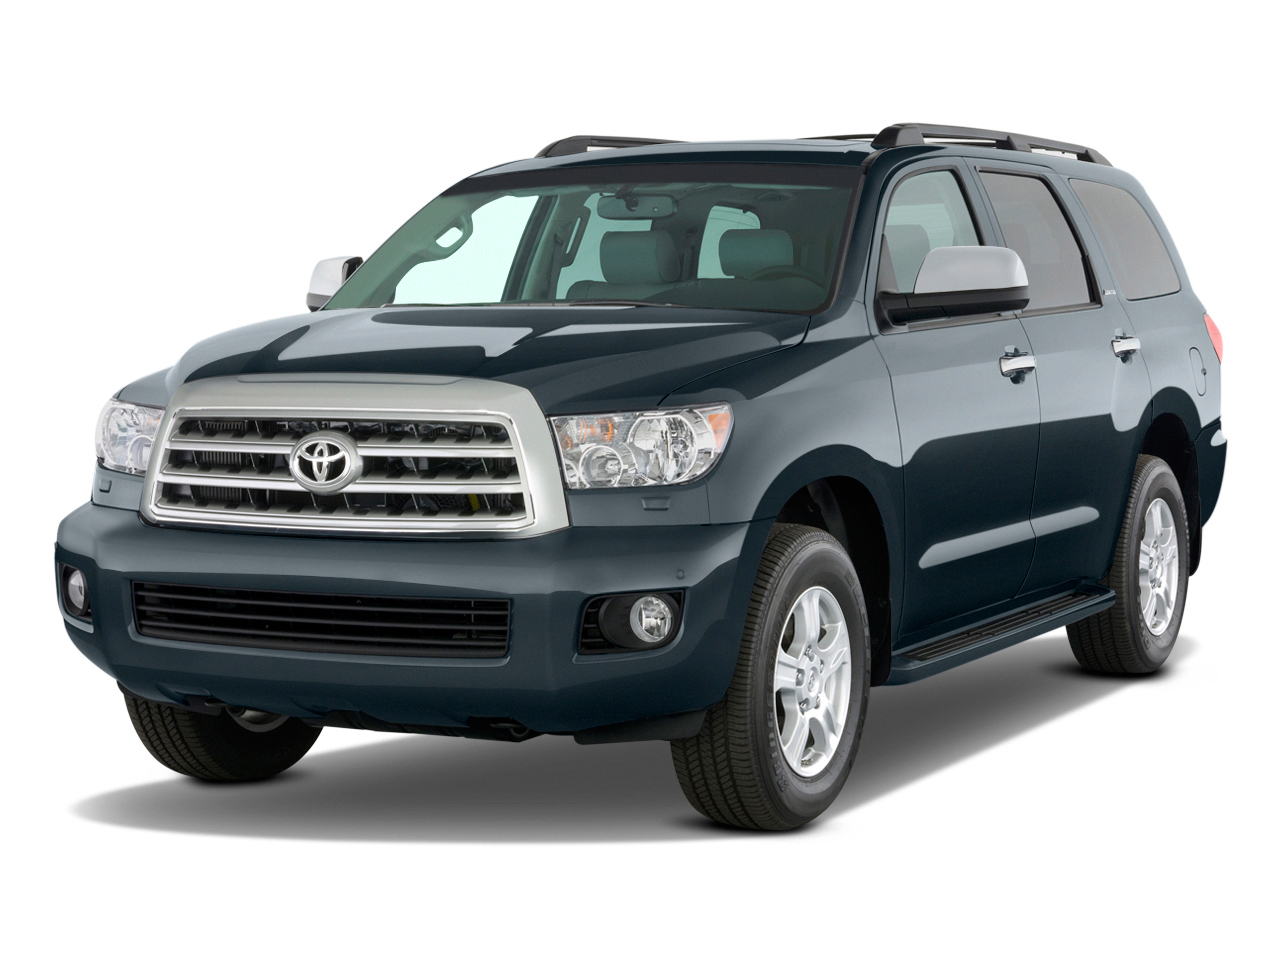 2011 toyota sequoia review ratings specs prices and photos the car connection. Black Bedroom Furniture Sets. Home Design Ideas